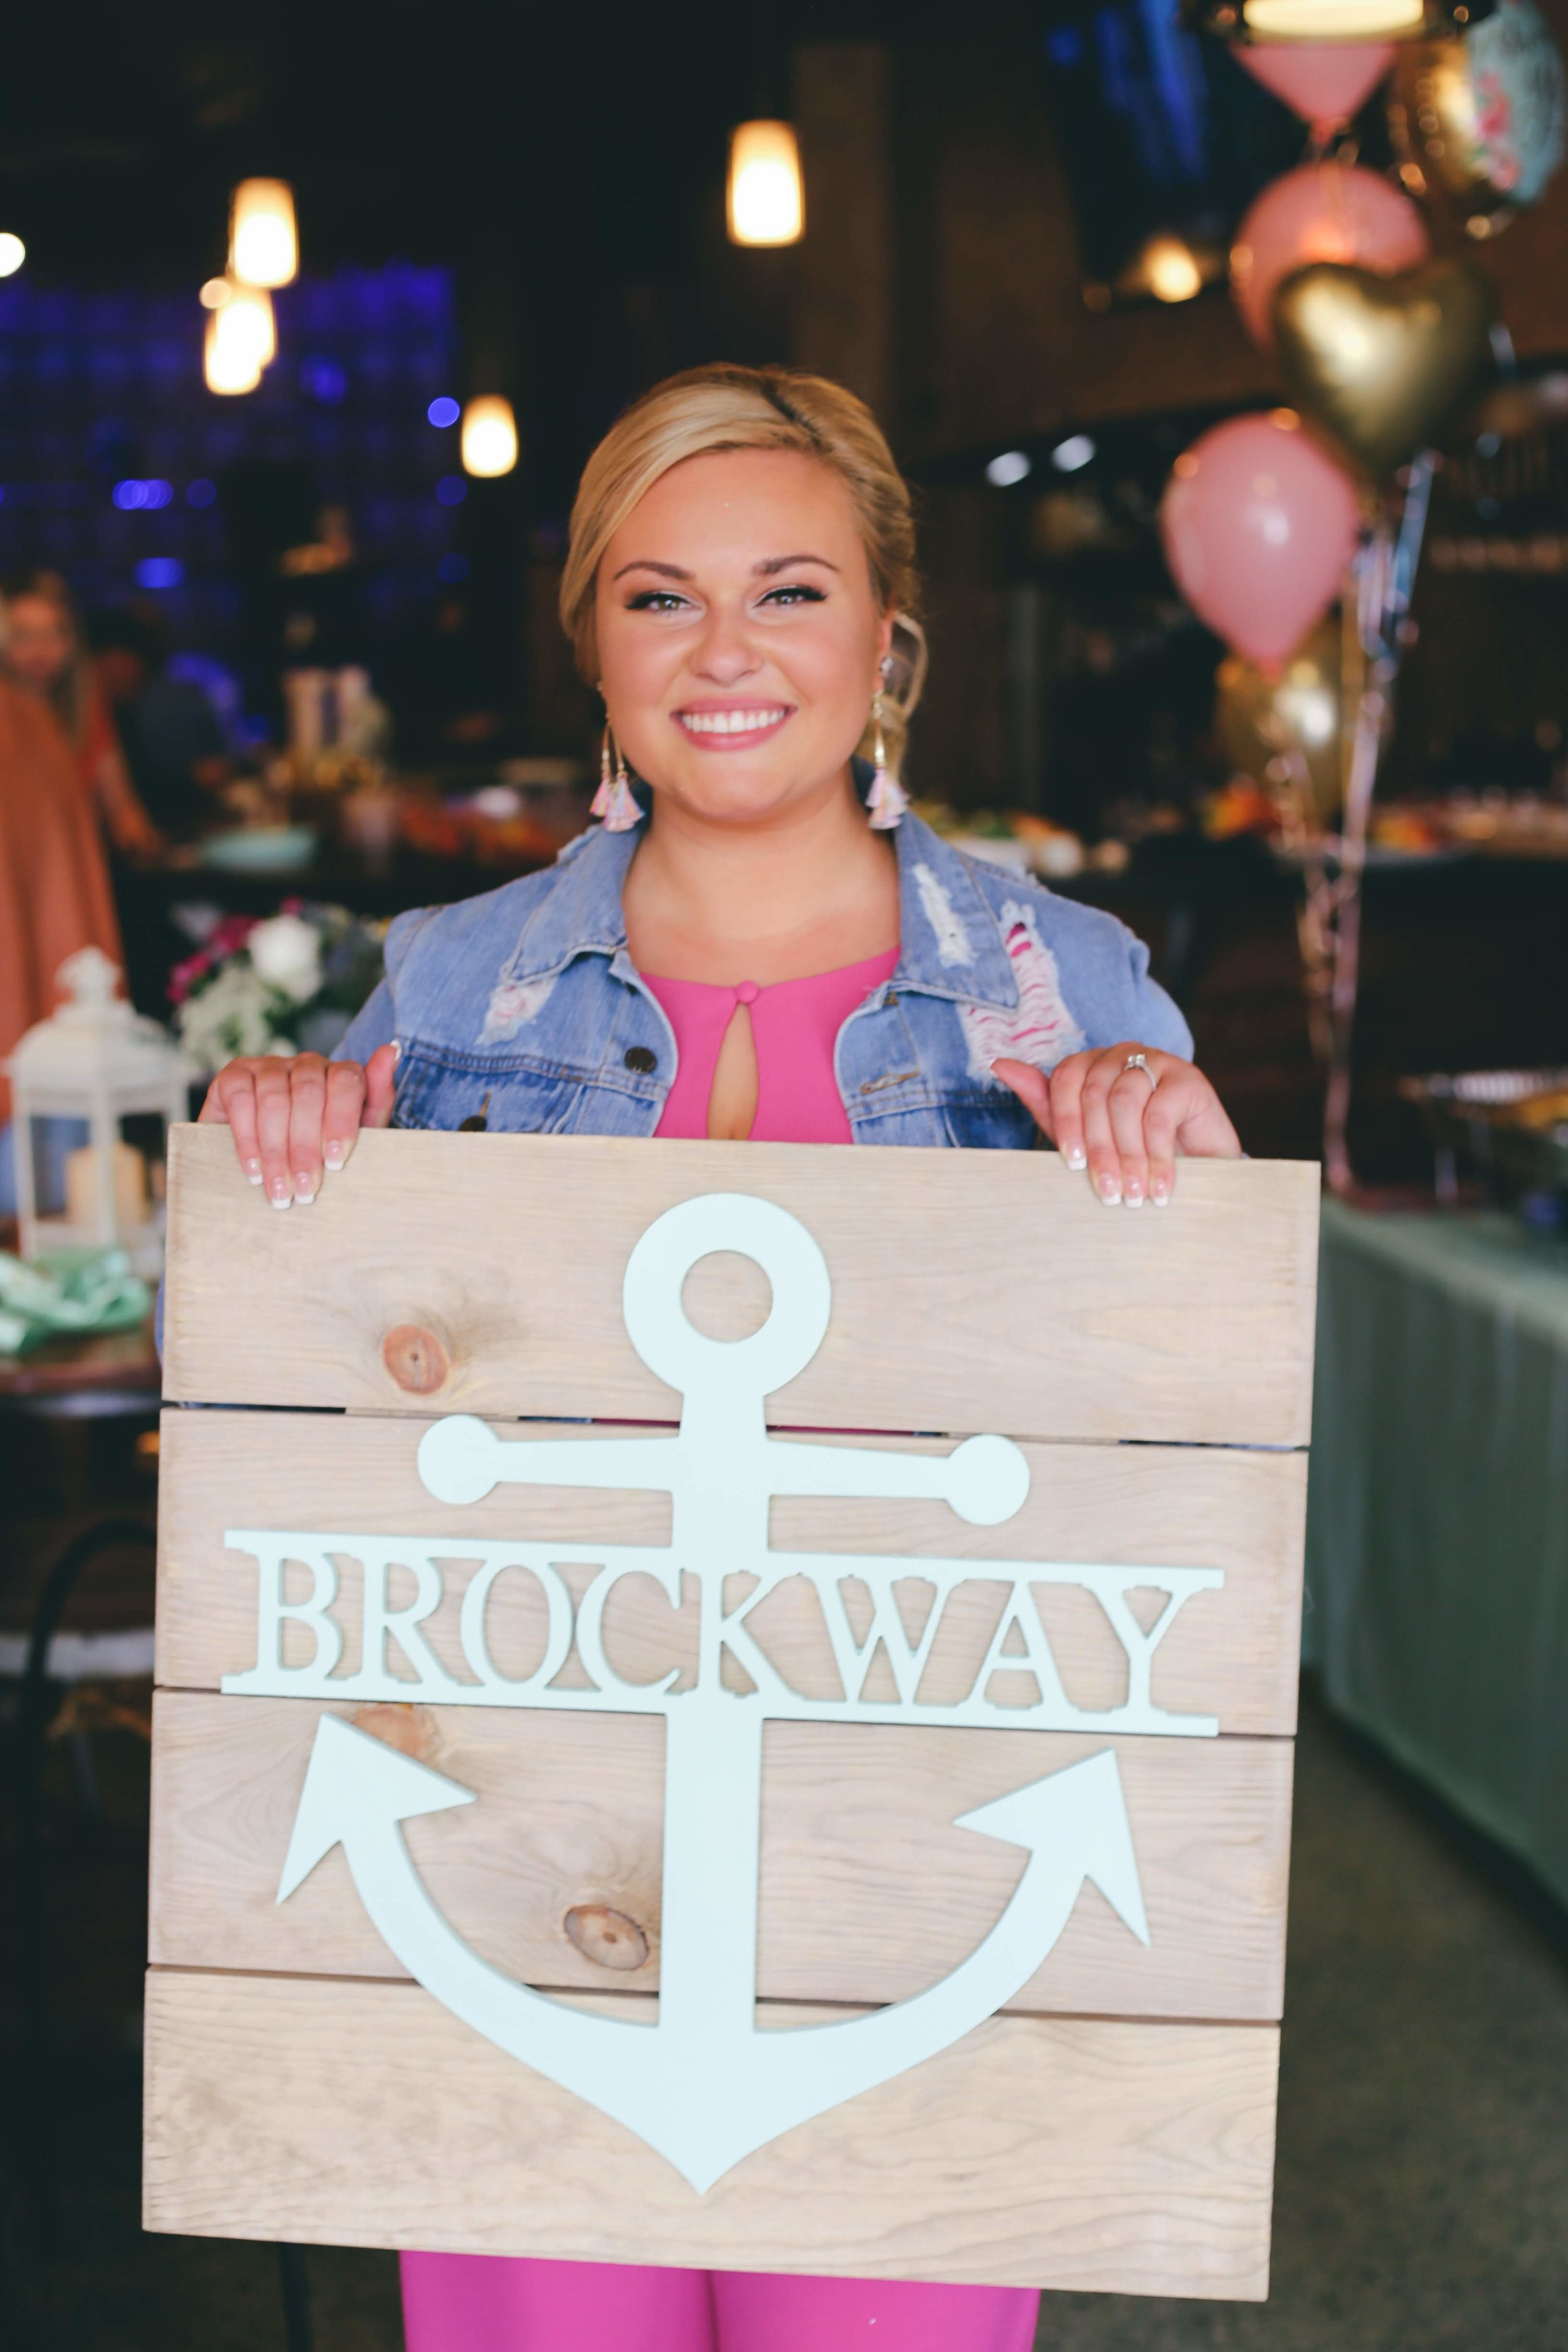 Nautical Bridal Shower at Vino Etcetera in Oconomowoc Wisconsin - The Bride with Brockway Anchor Sign - Photo by Danielle Kuenzi Photography